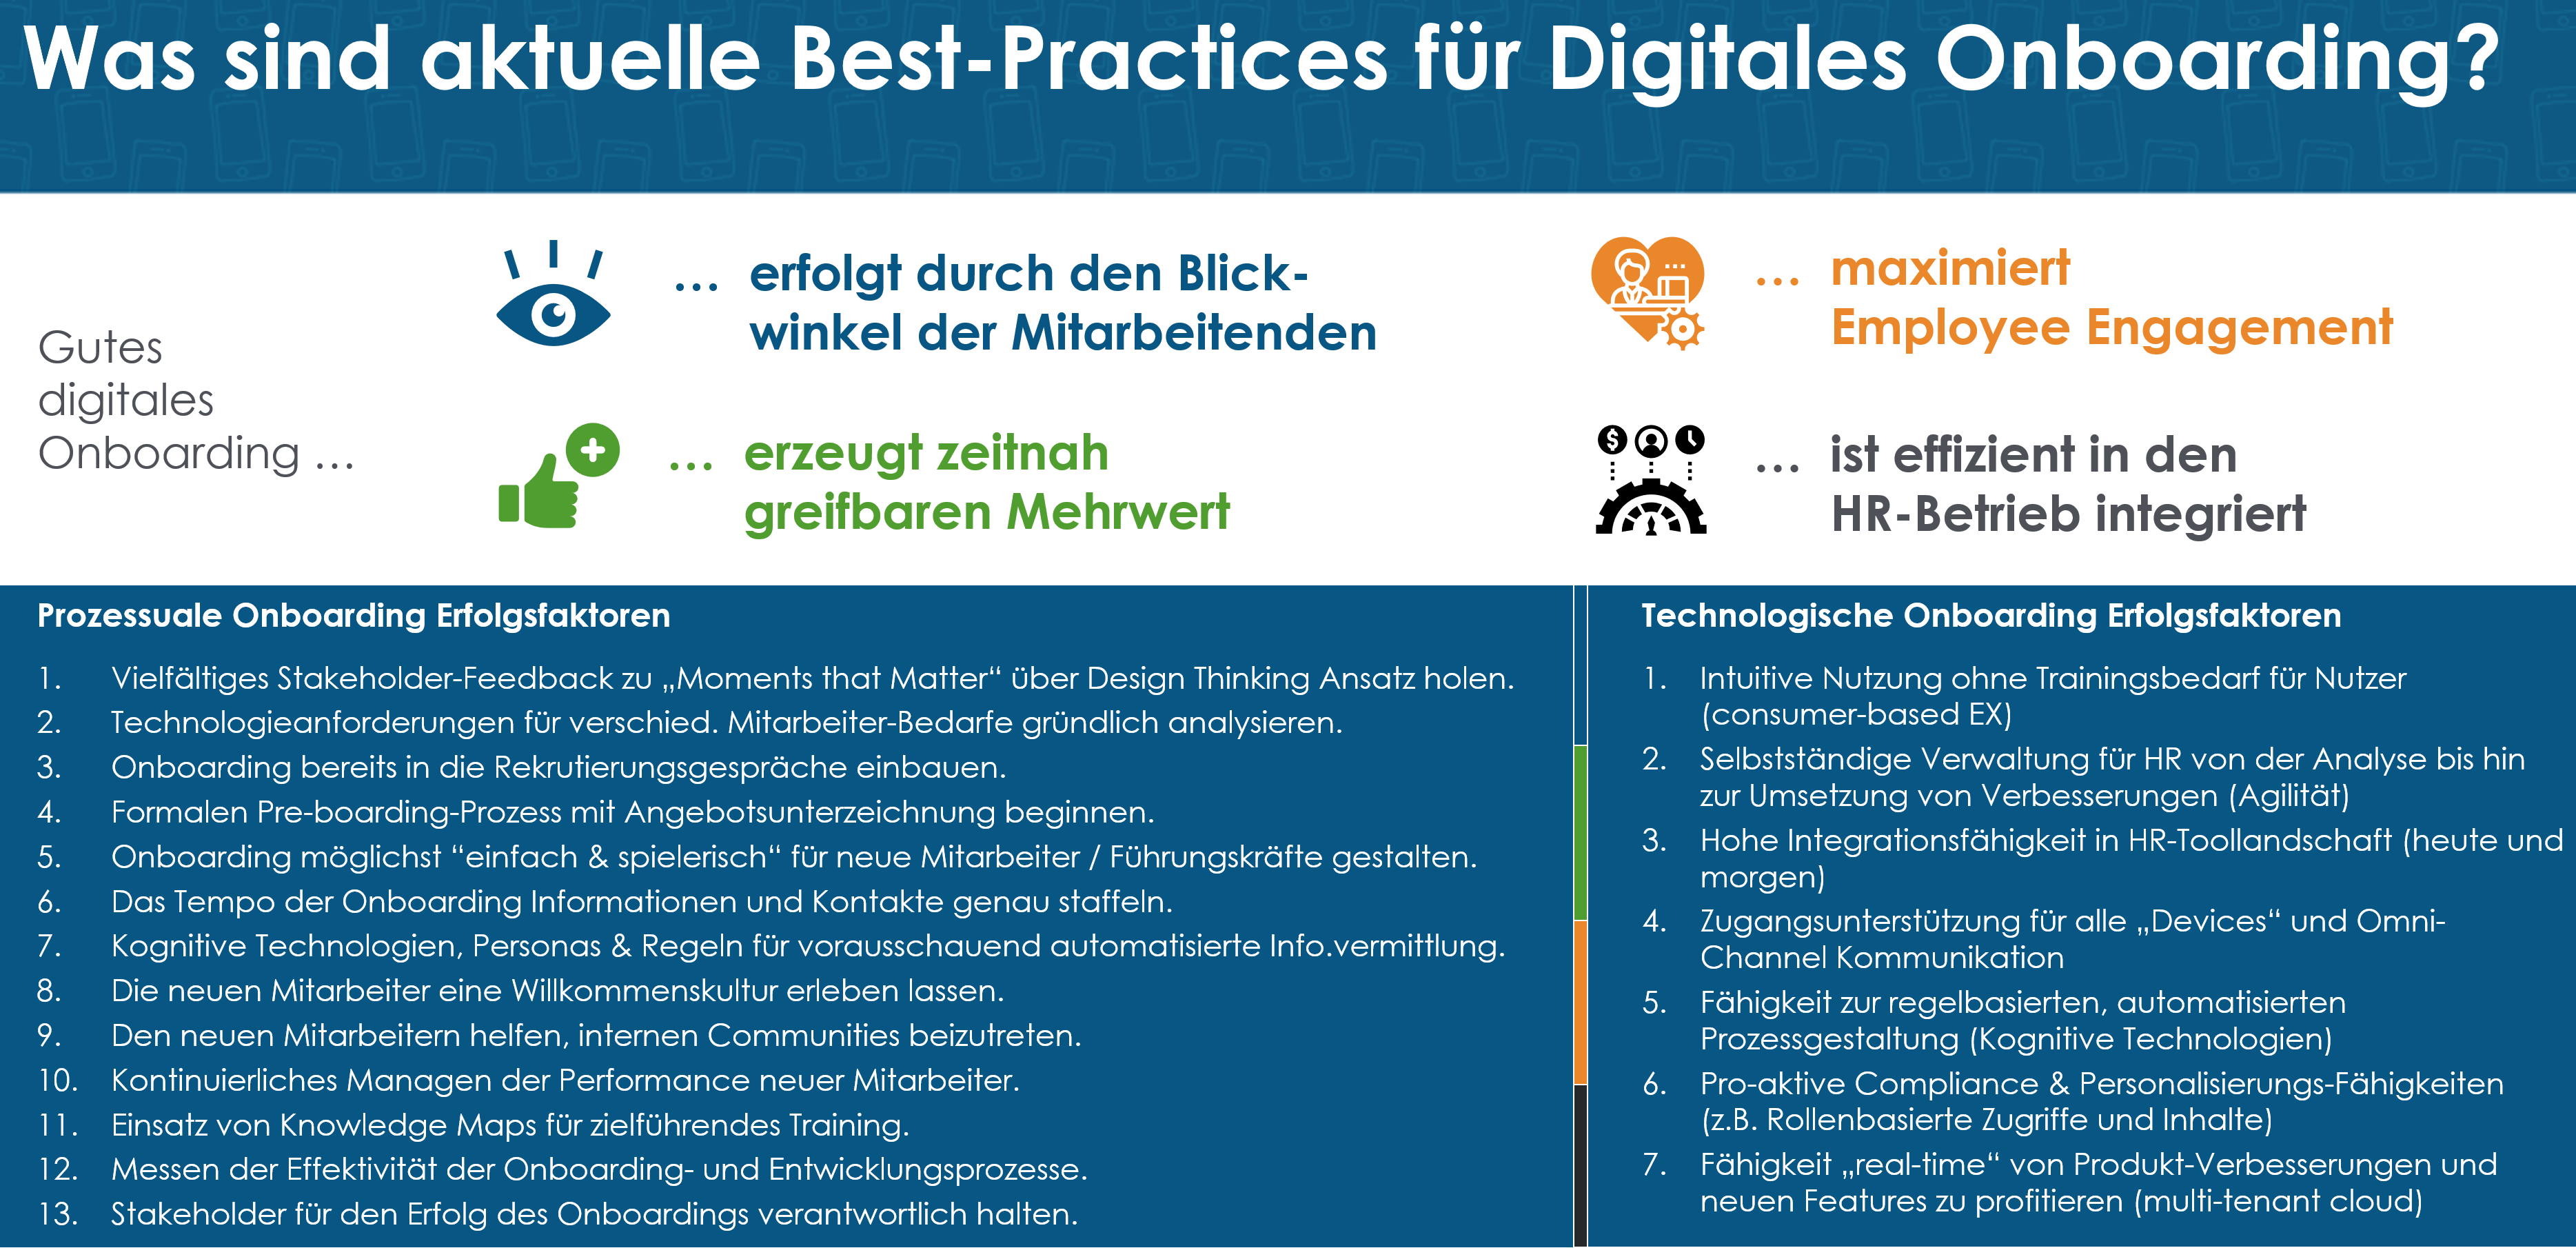 Checkliste Best Practices für digitales Onboarding